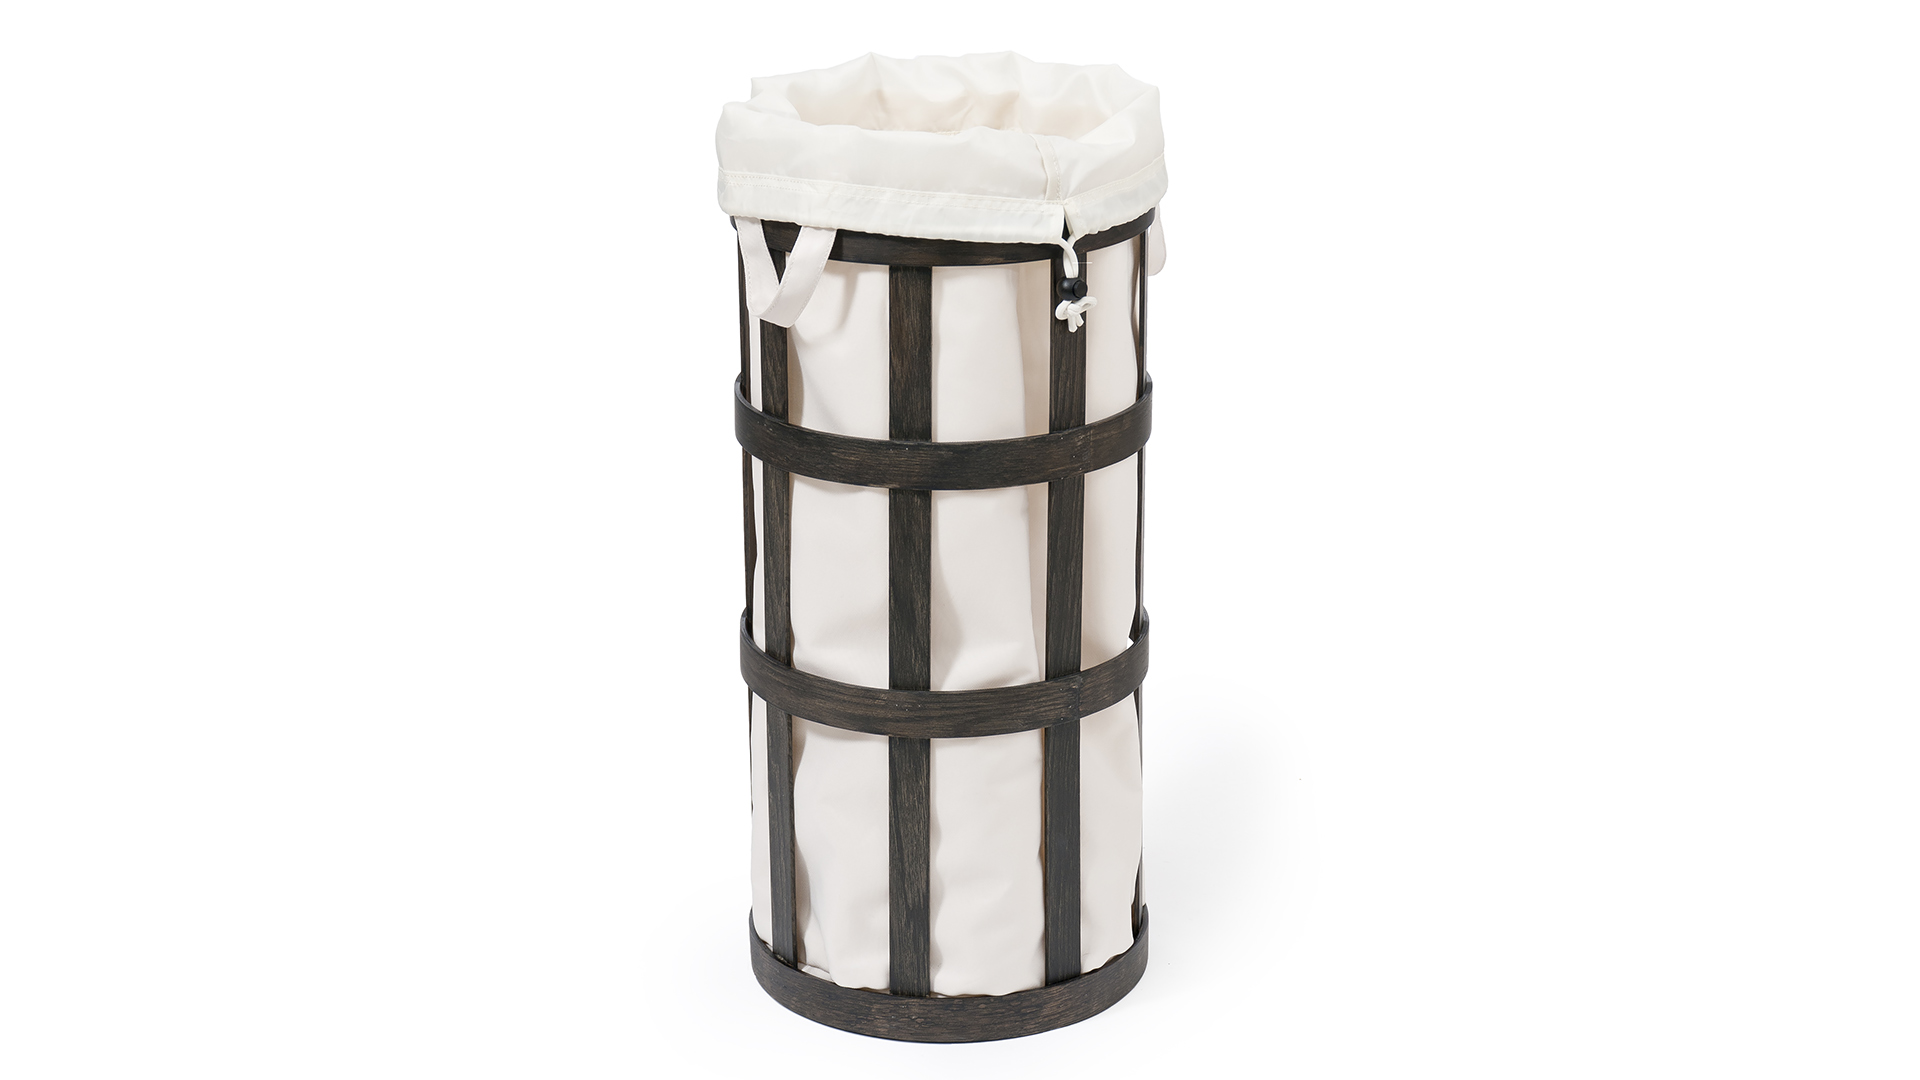 Cage-laundry-basket-dark-aok-ivory-above